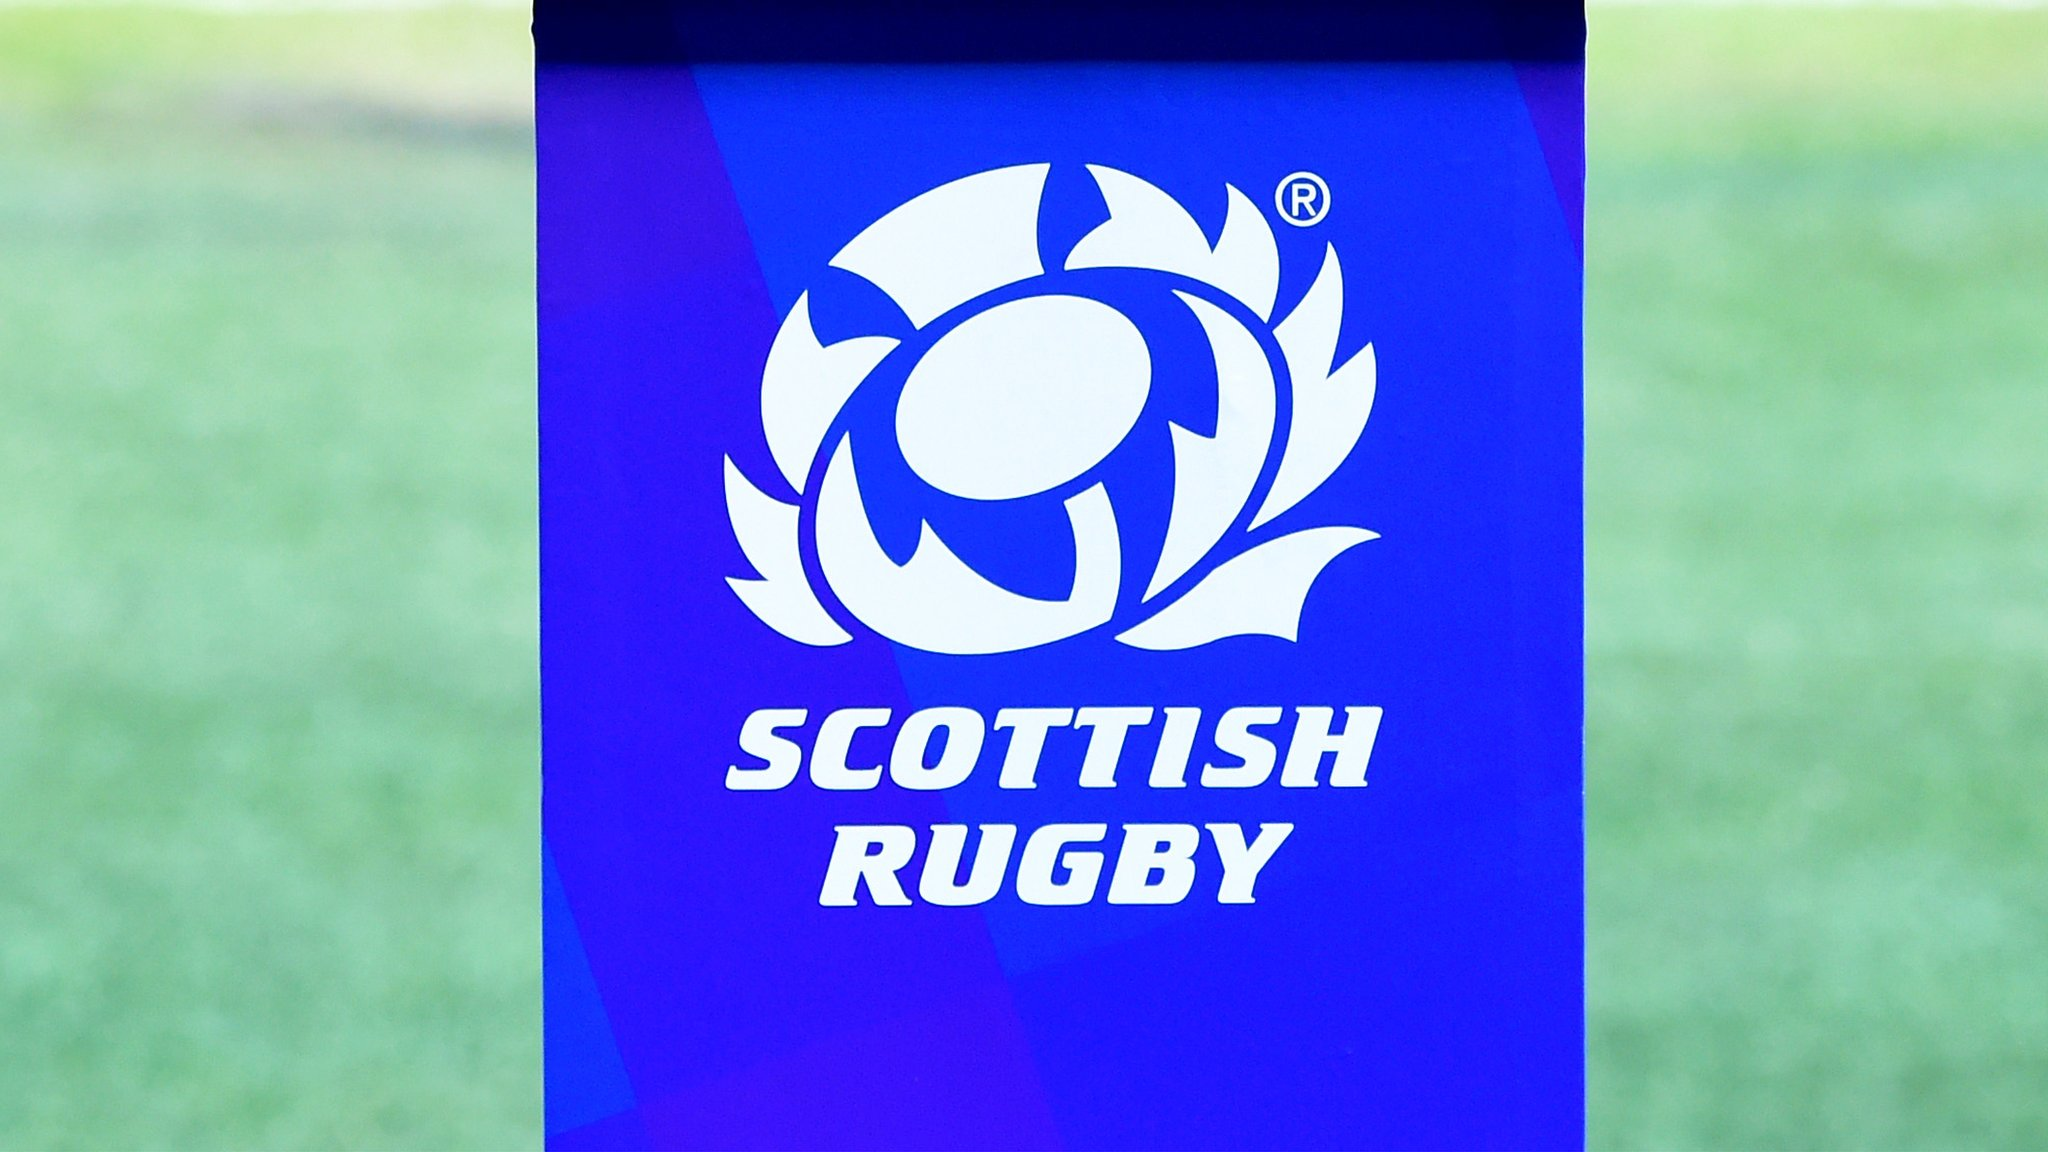 Scottish Rugby has not learned lessons from unfair dismissal case - Russell